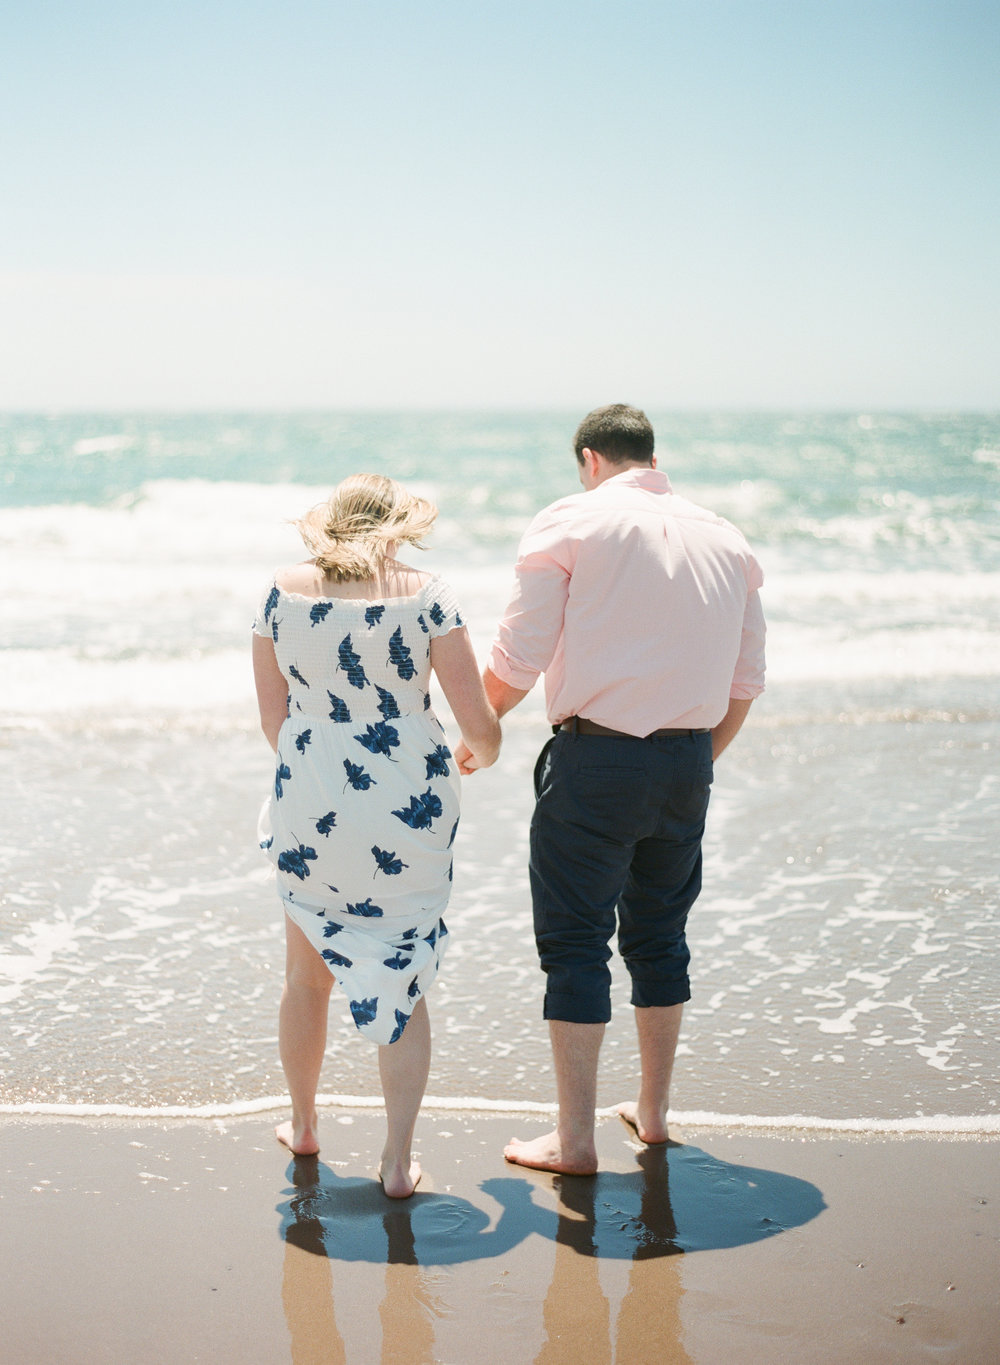 Jacqueline Anne Photography-Melissa and Daniel - Contax 645 - Beach Full Sun-3.jpg